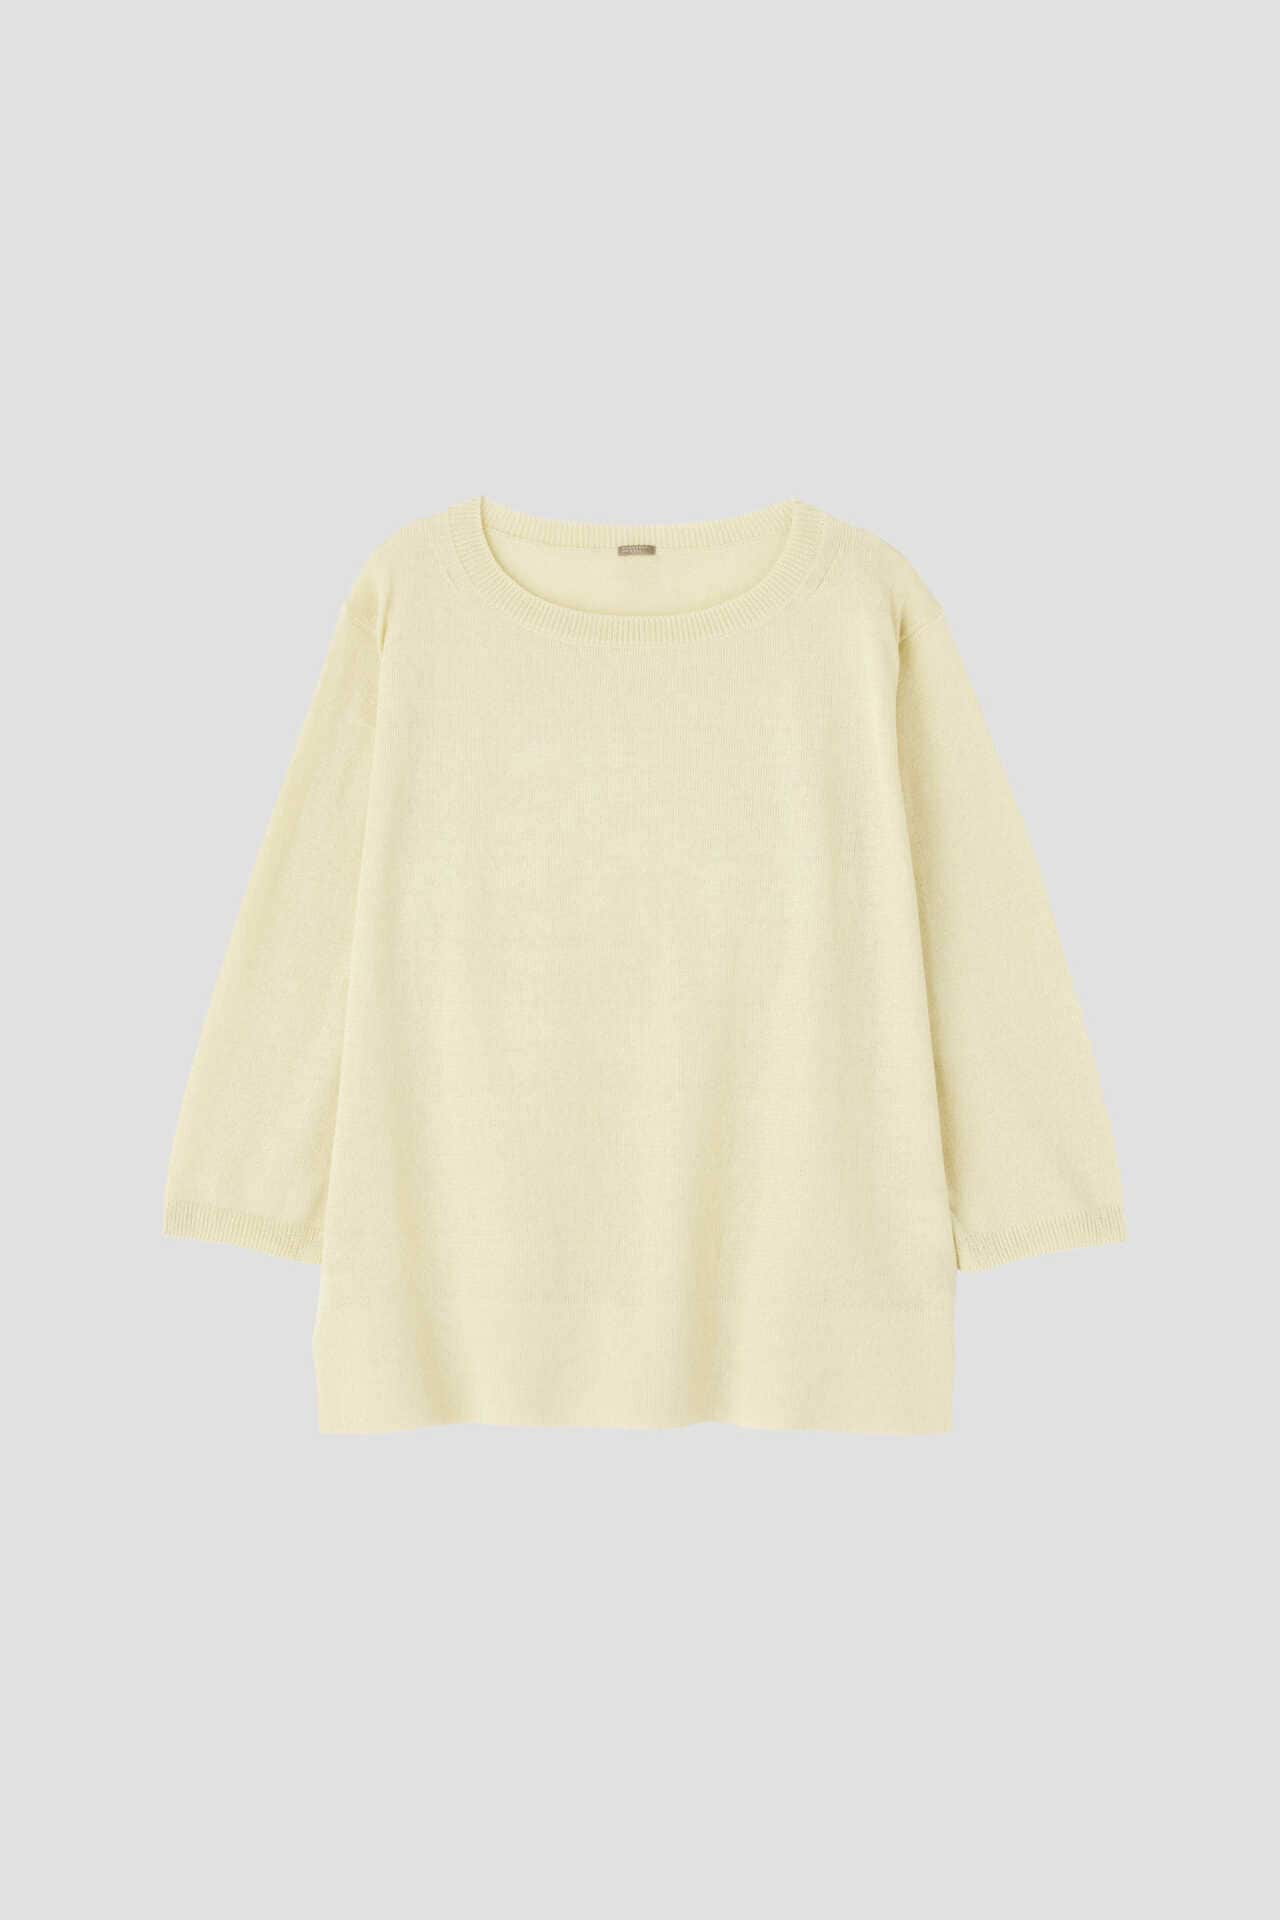 LINEN COTTON JUMPER6